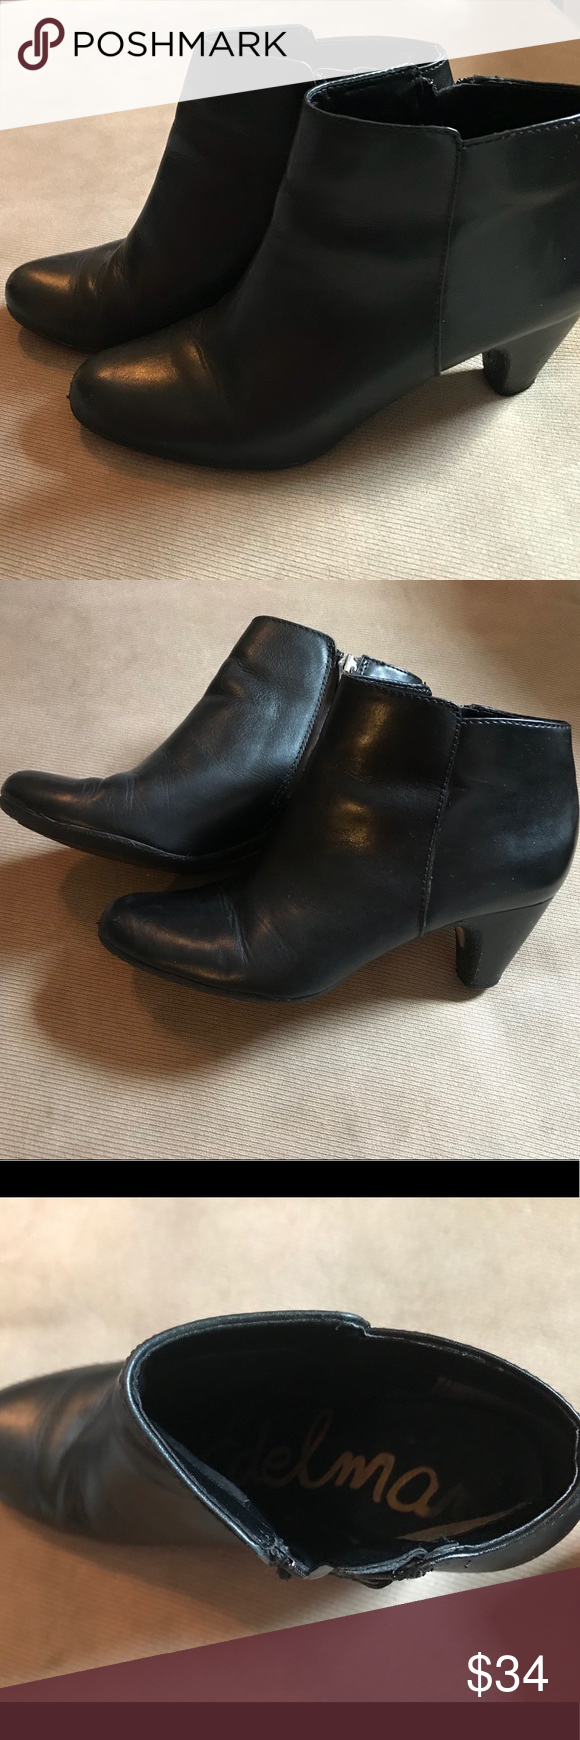 3b5bb1831465 Sam Edelman Meredith Black Ankle Booties The perfect basic bootie! These  are in great preowned